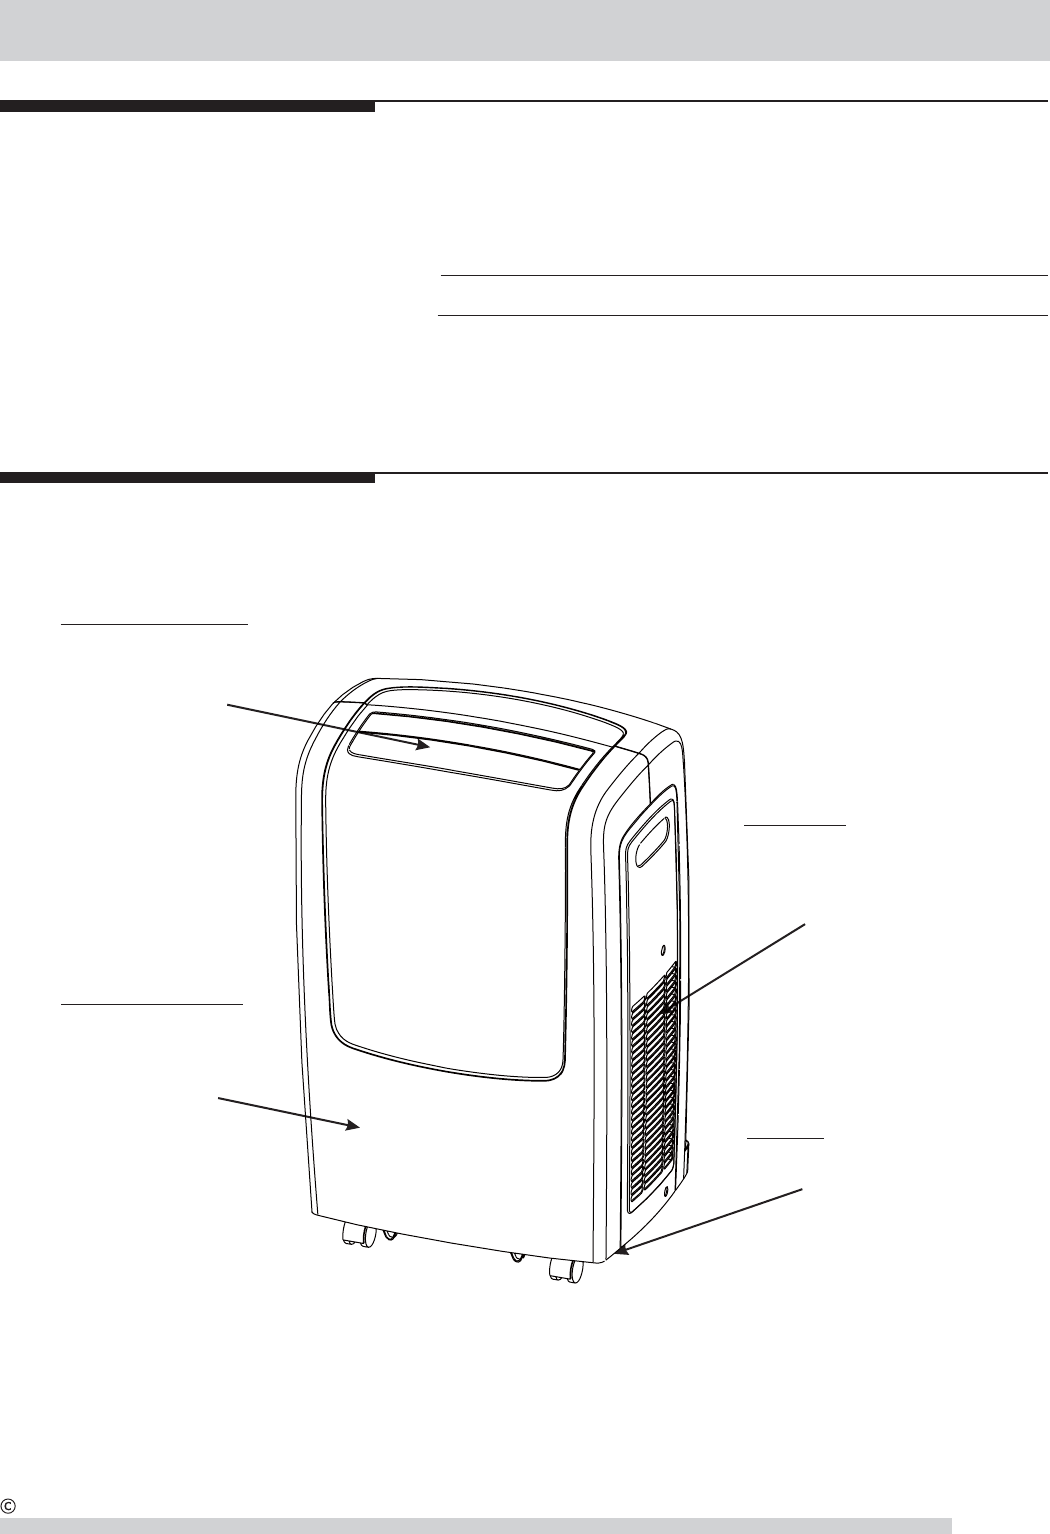 Page 3 of Frigidaire Air Conditioner 2020252A0373 User Guide